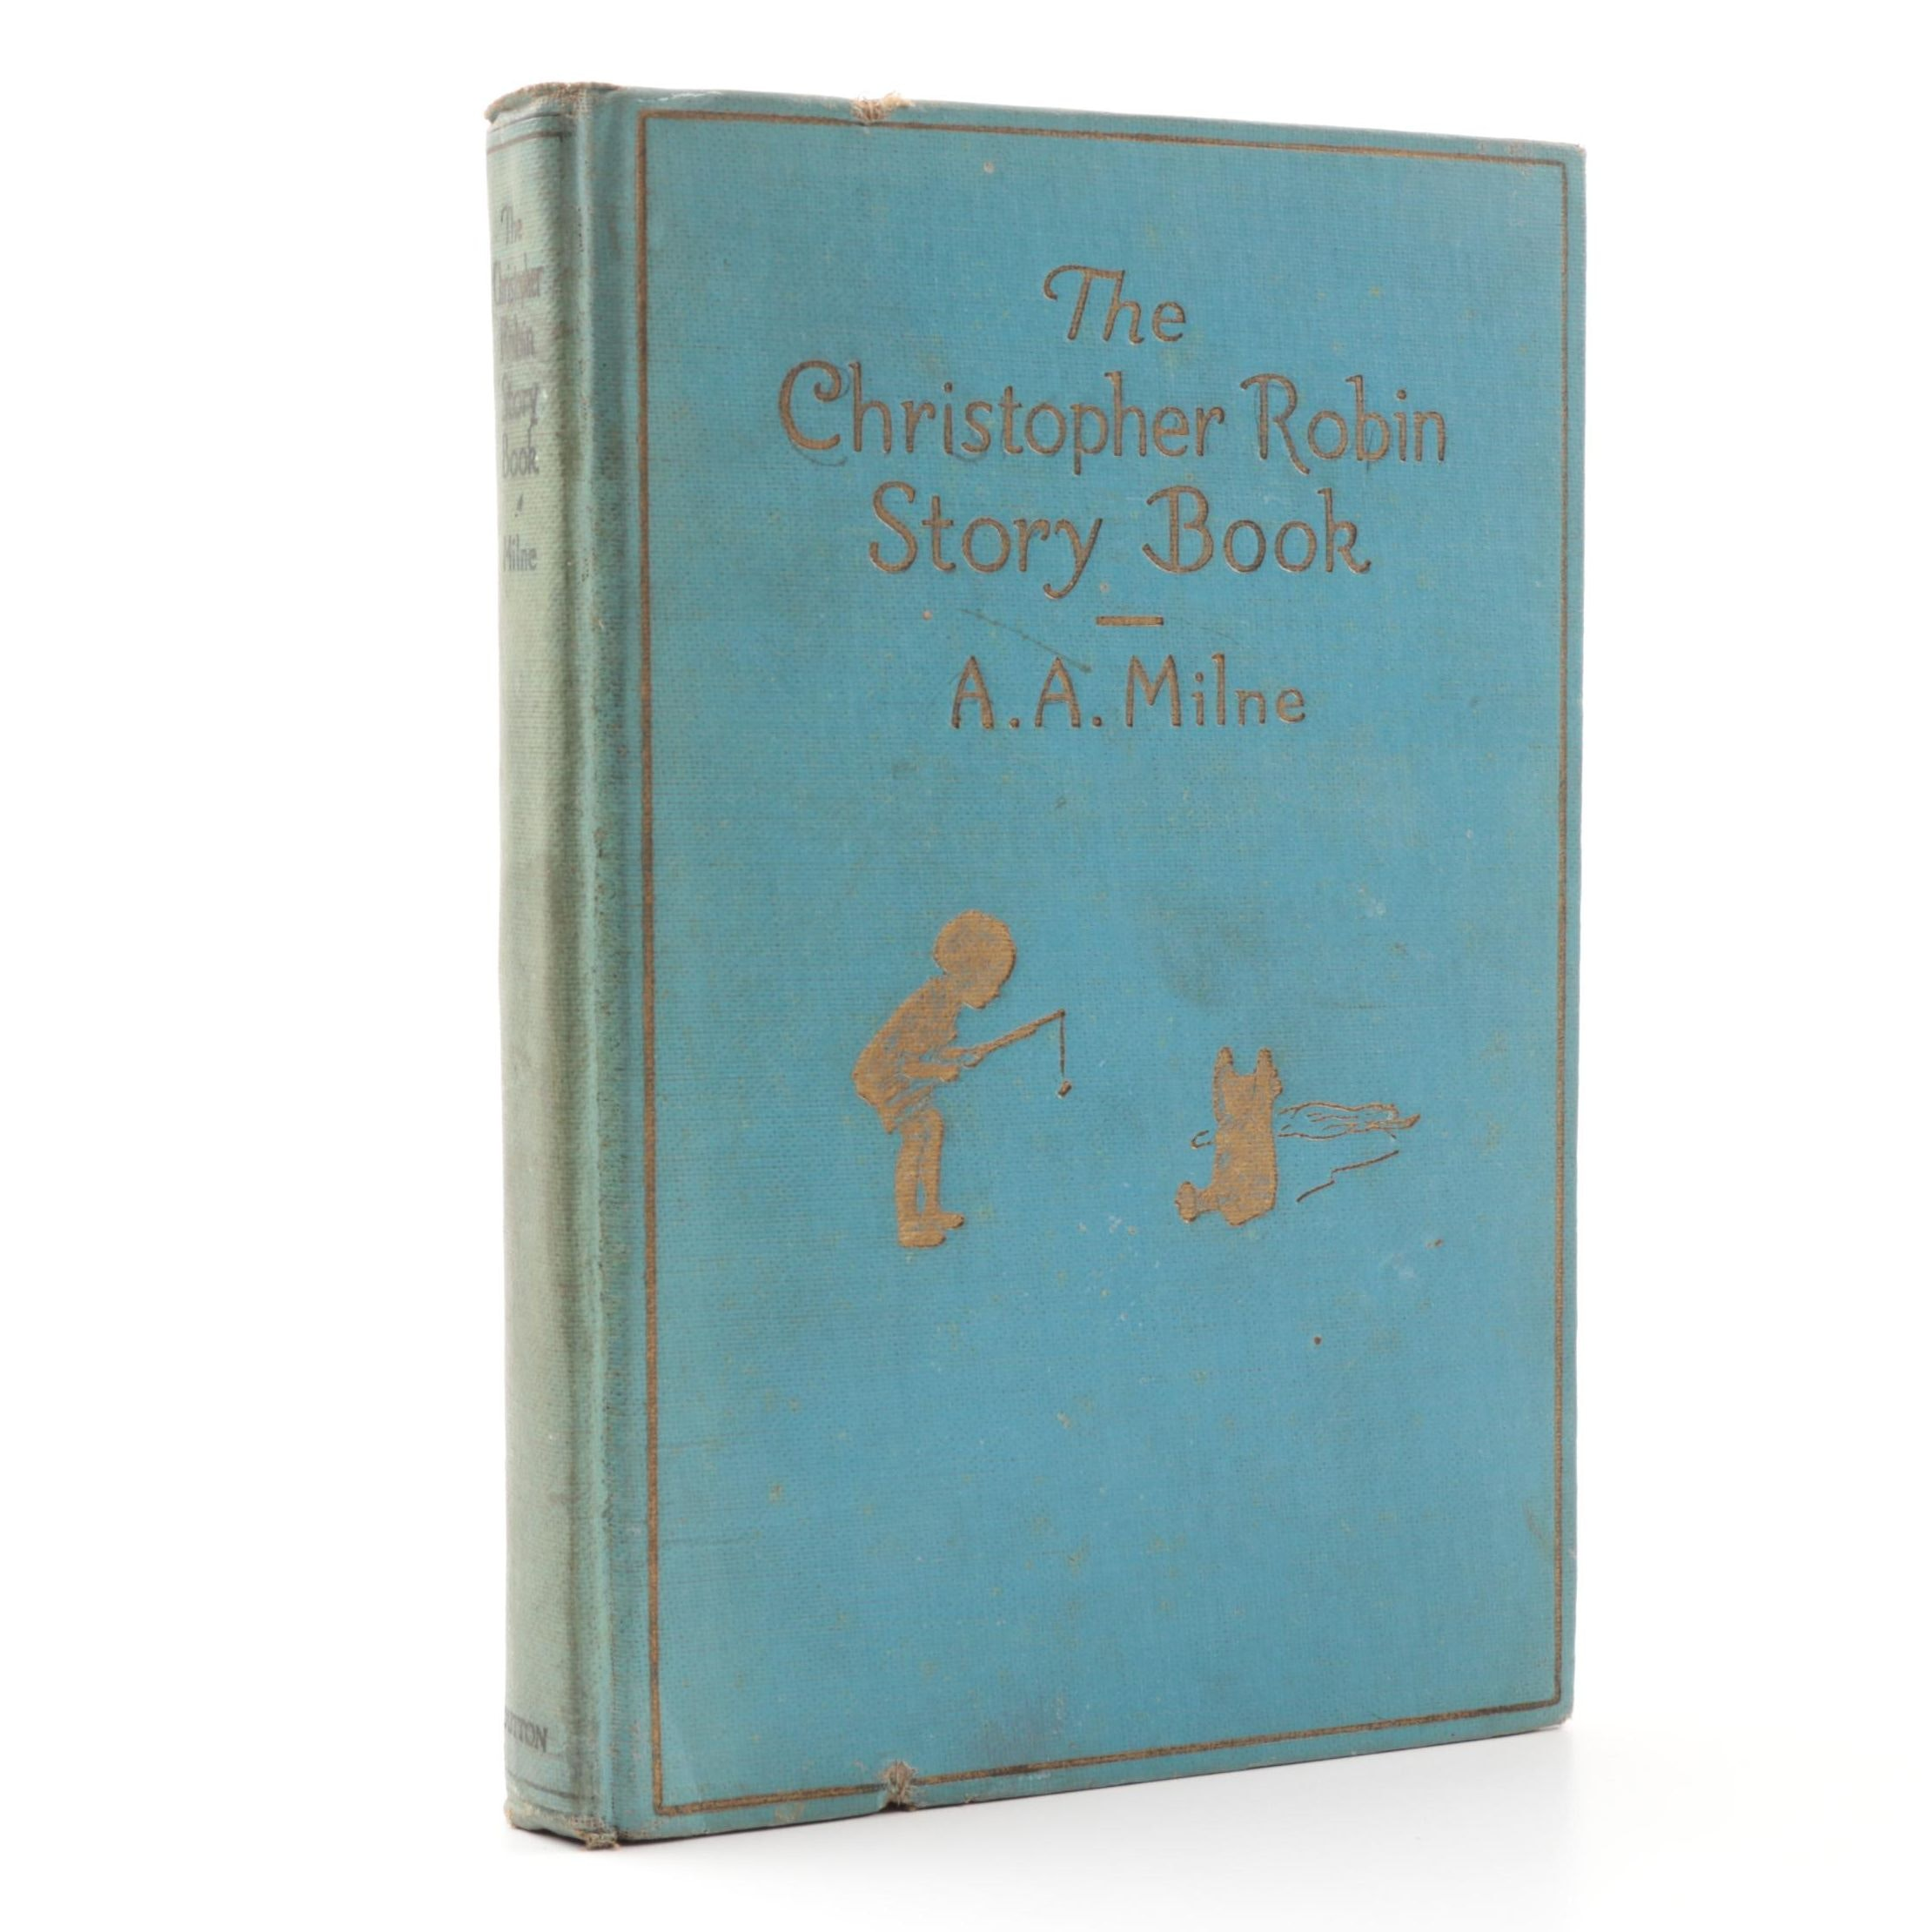 """1929 First American Edition """"The Christopher Robin Story Book"""" by A.A. Milne"""